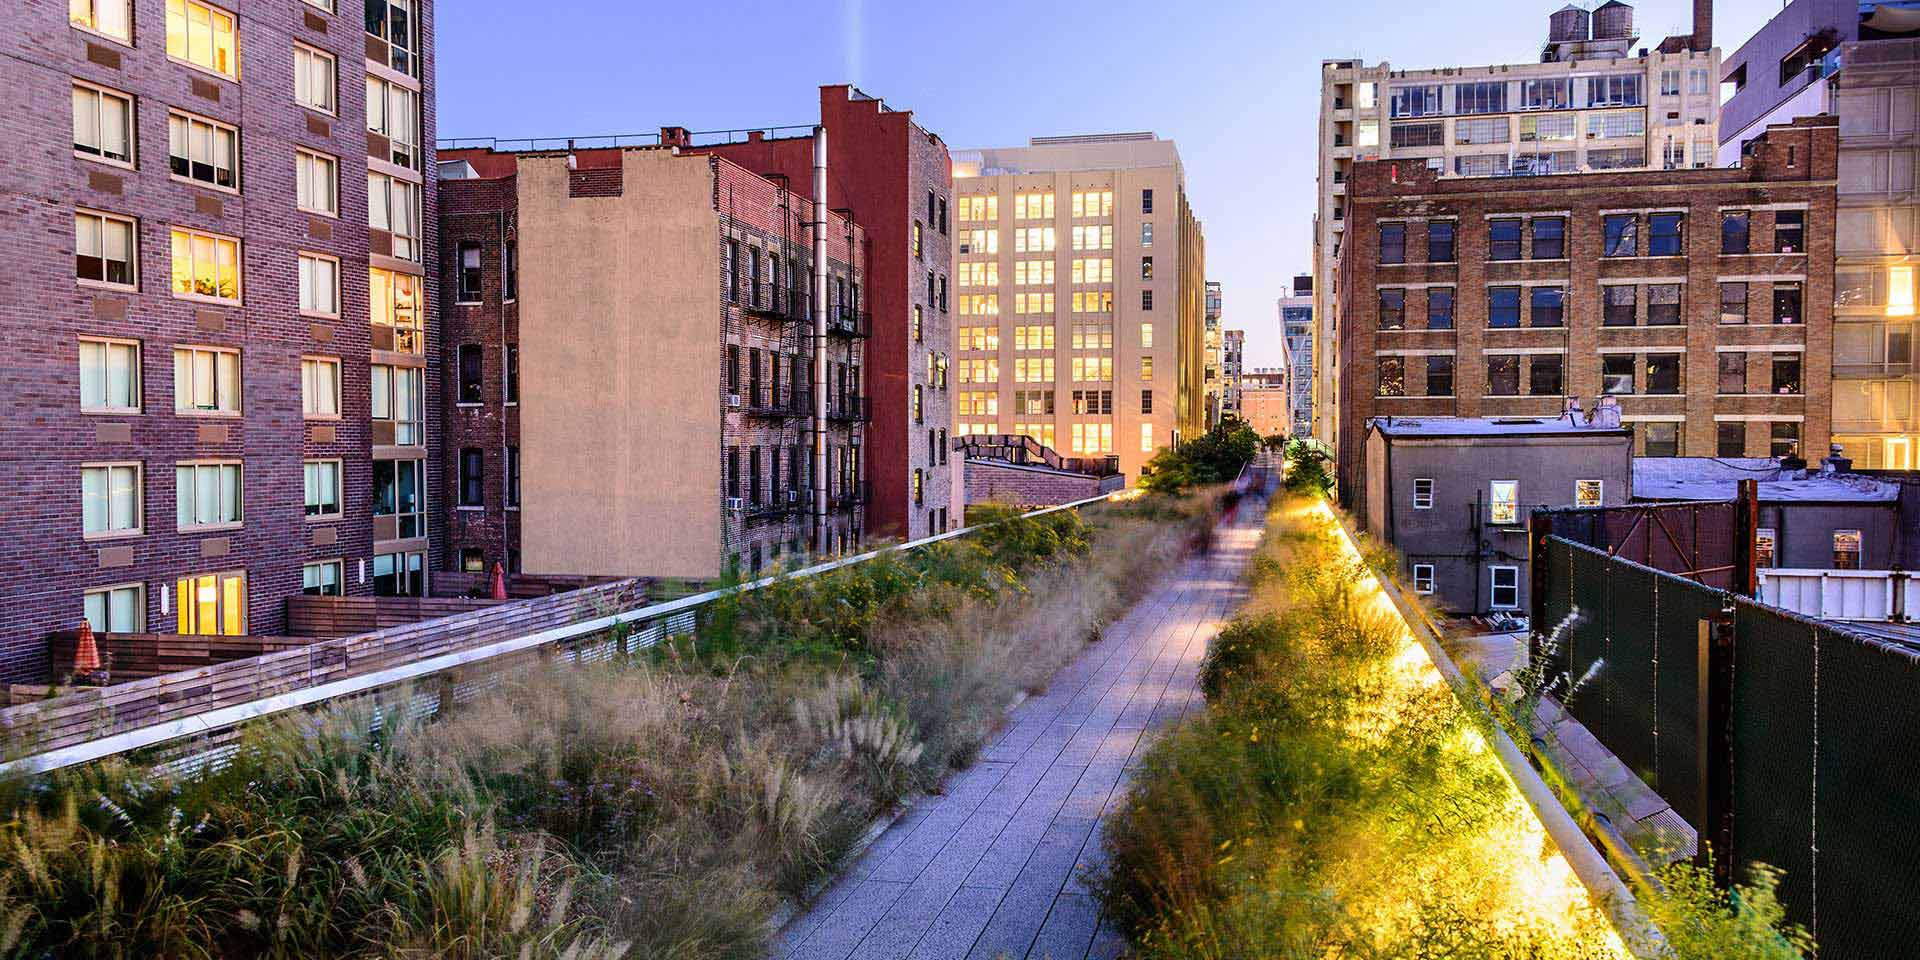 high line park nueva york la v a verde de manhattan. Black Bedroom Furniture Sets. Home Design Ideas